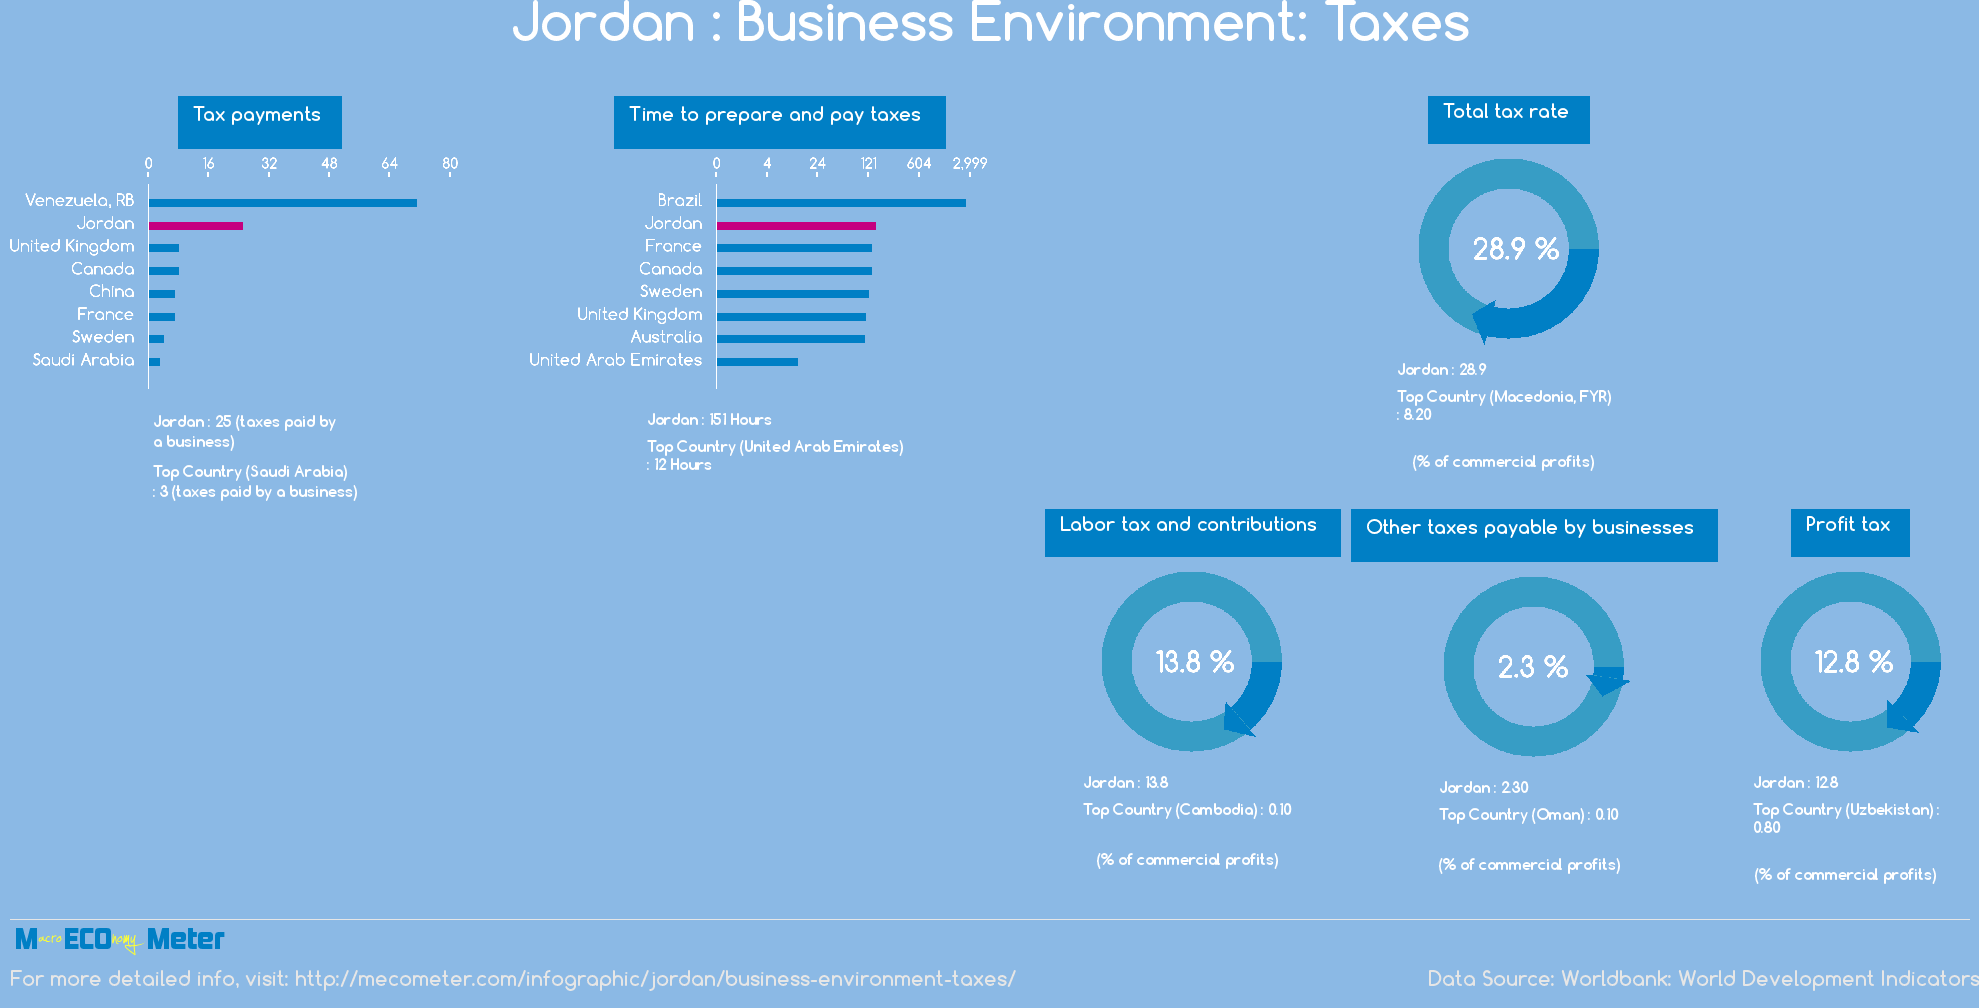 Jordan : Business Environment: Taxes